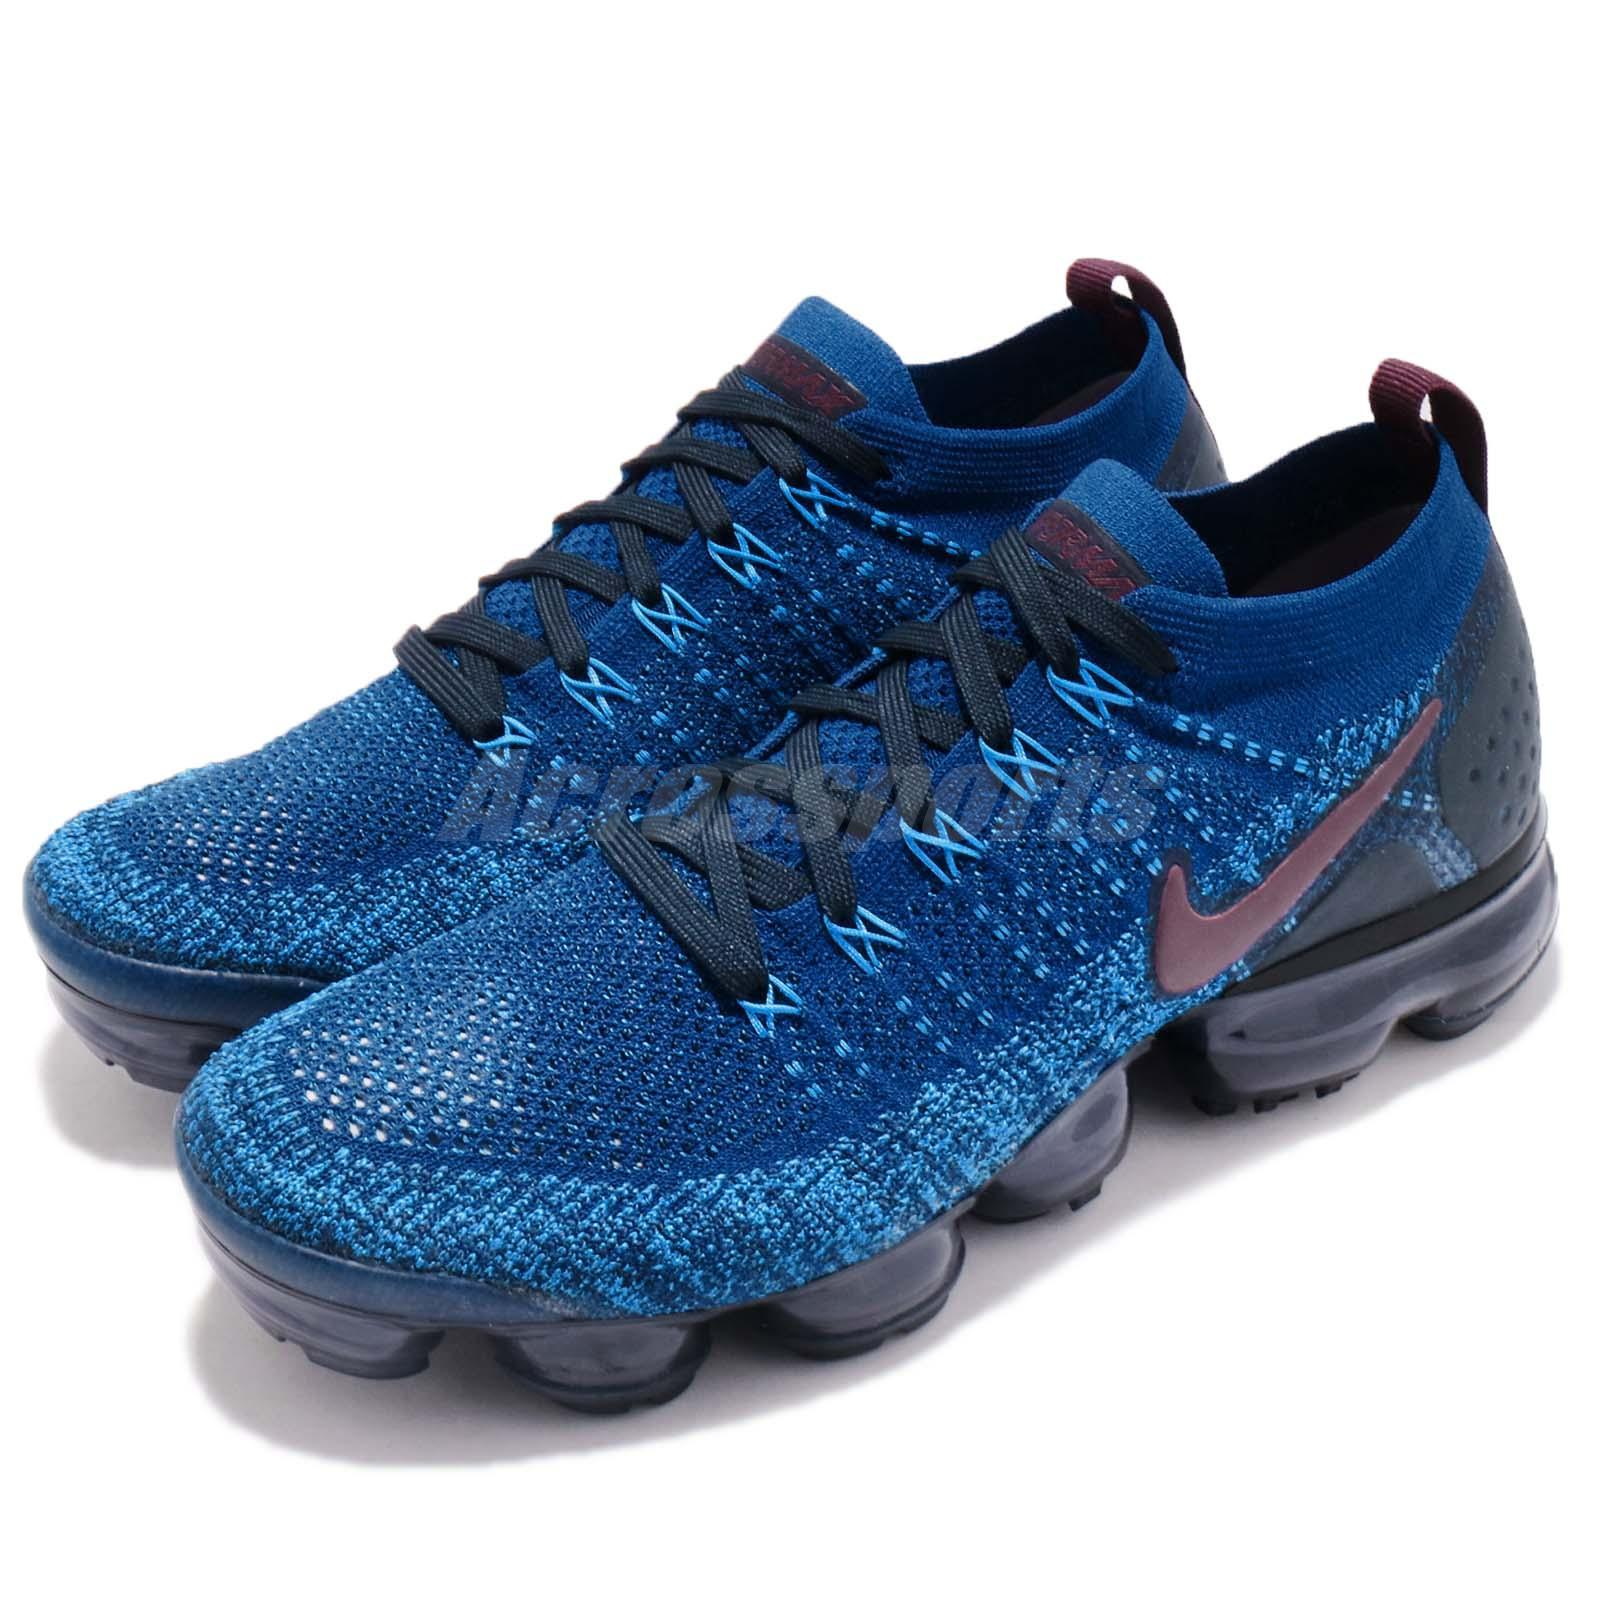 a08608902f282 Details about Nike Air Vapormax Flyknit 2 II Gym Blue Navy Men Running Shoe  Sneaker 942842-401